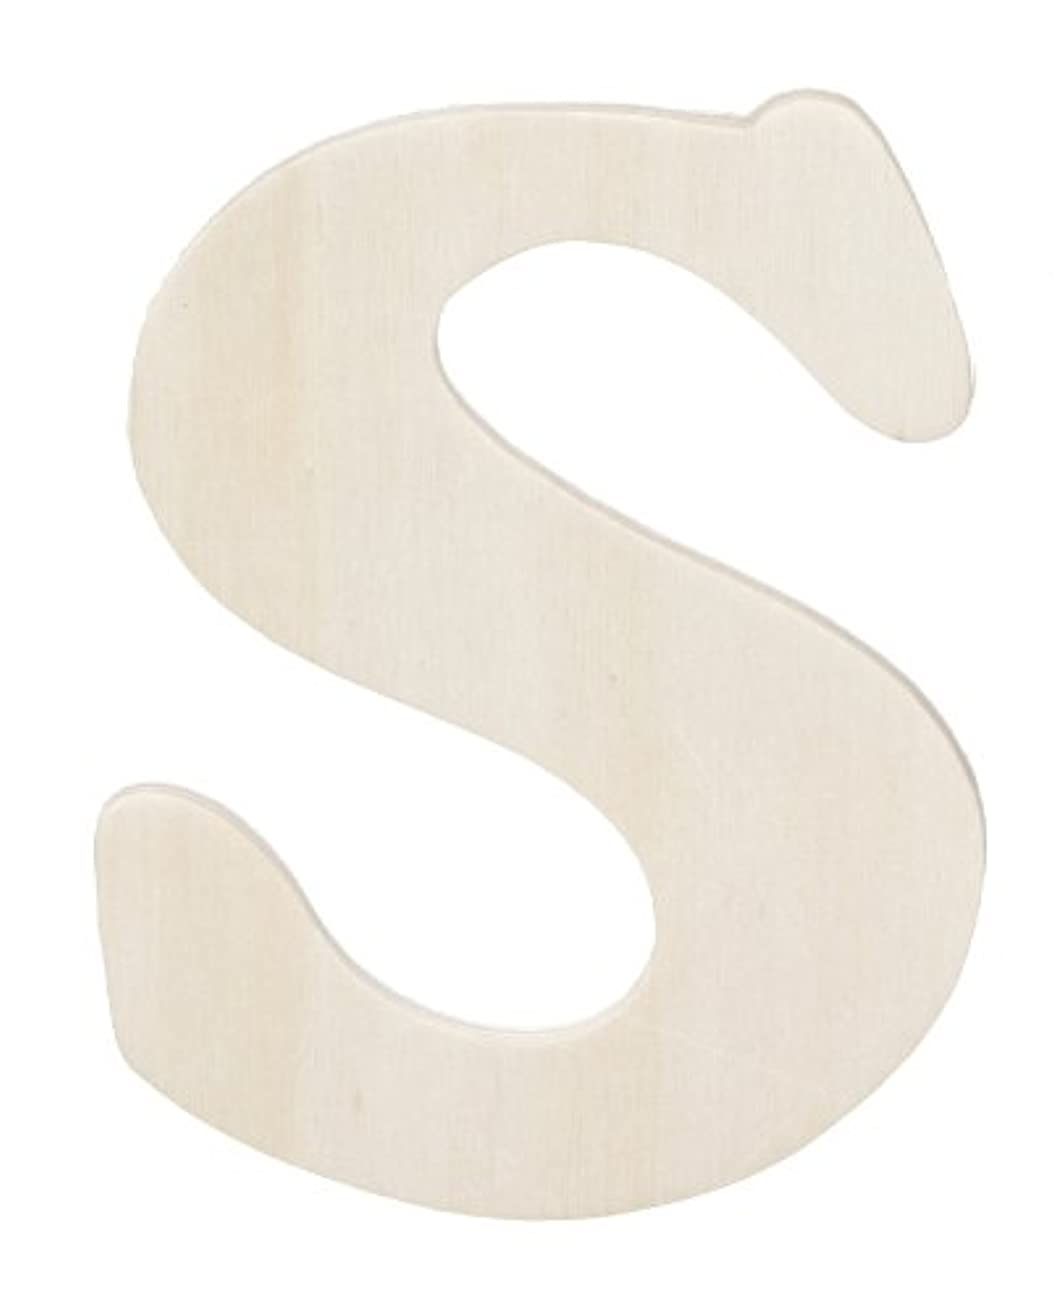 Darice 9181-S Wood Cutout, Letter S